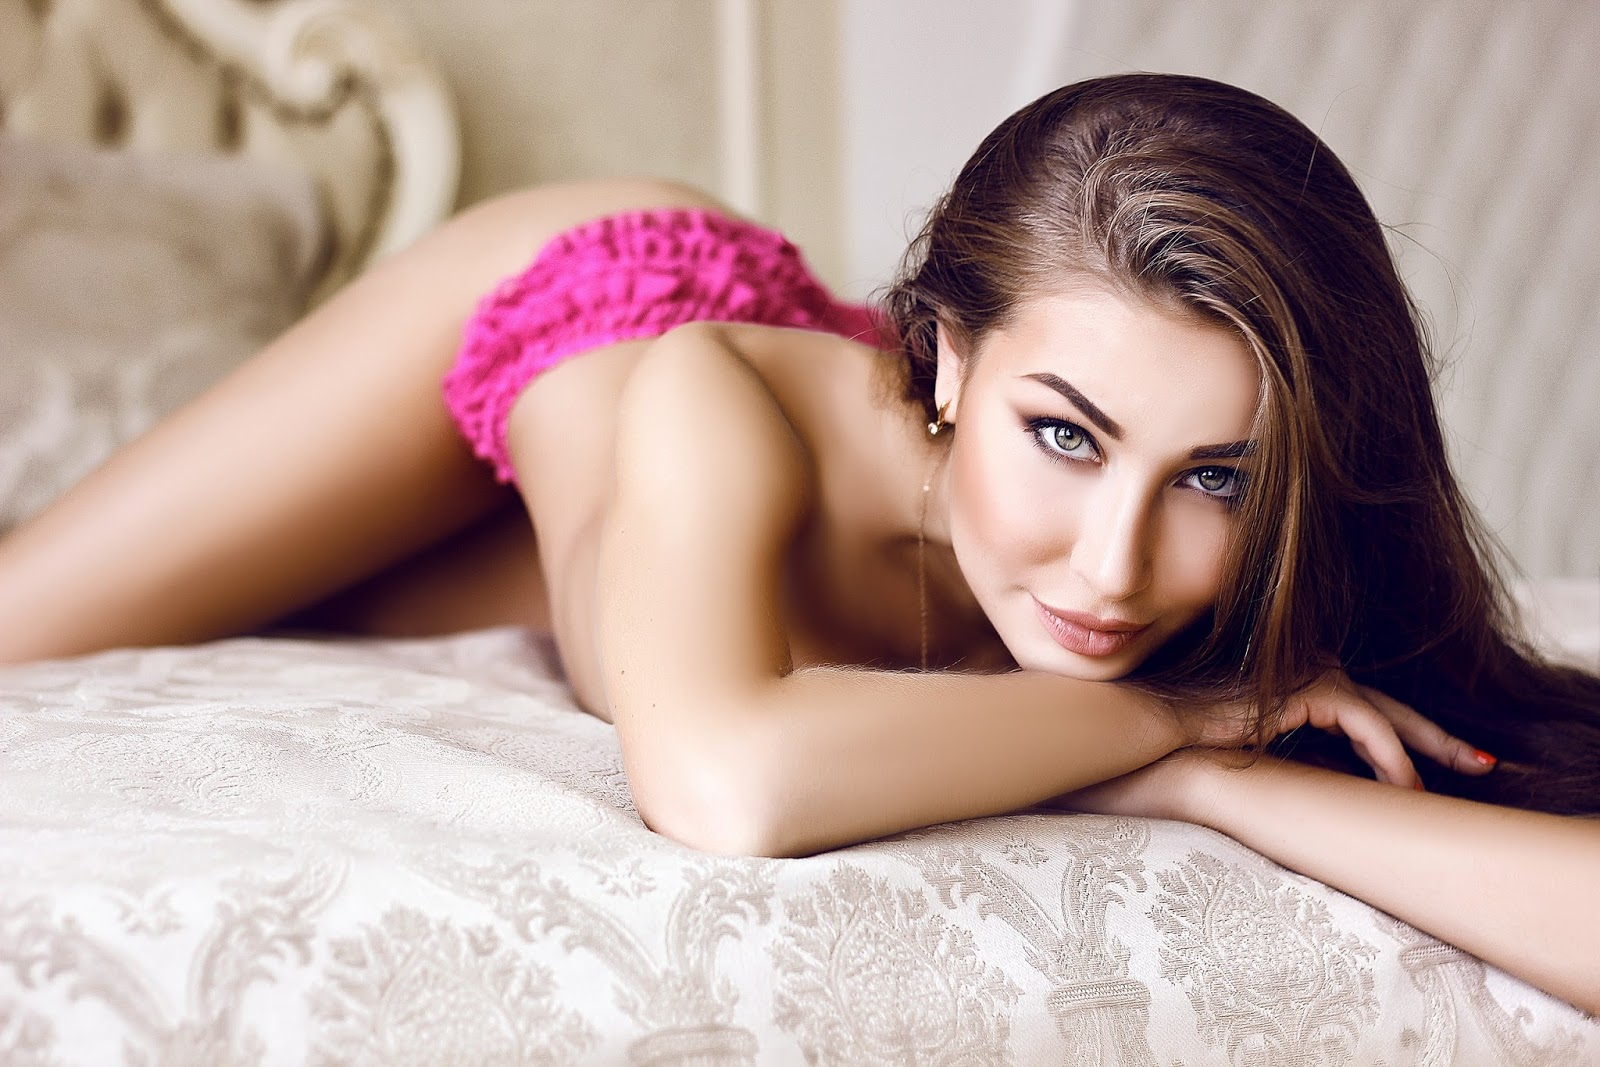 Ukrainian Woman Is Very Lovely 9